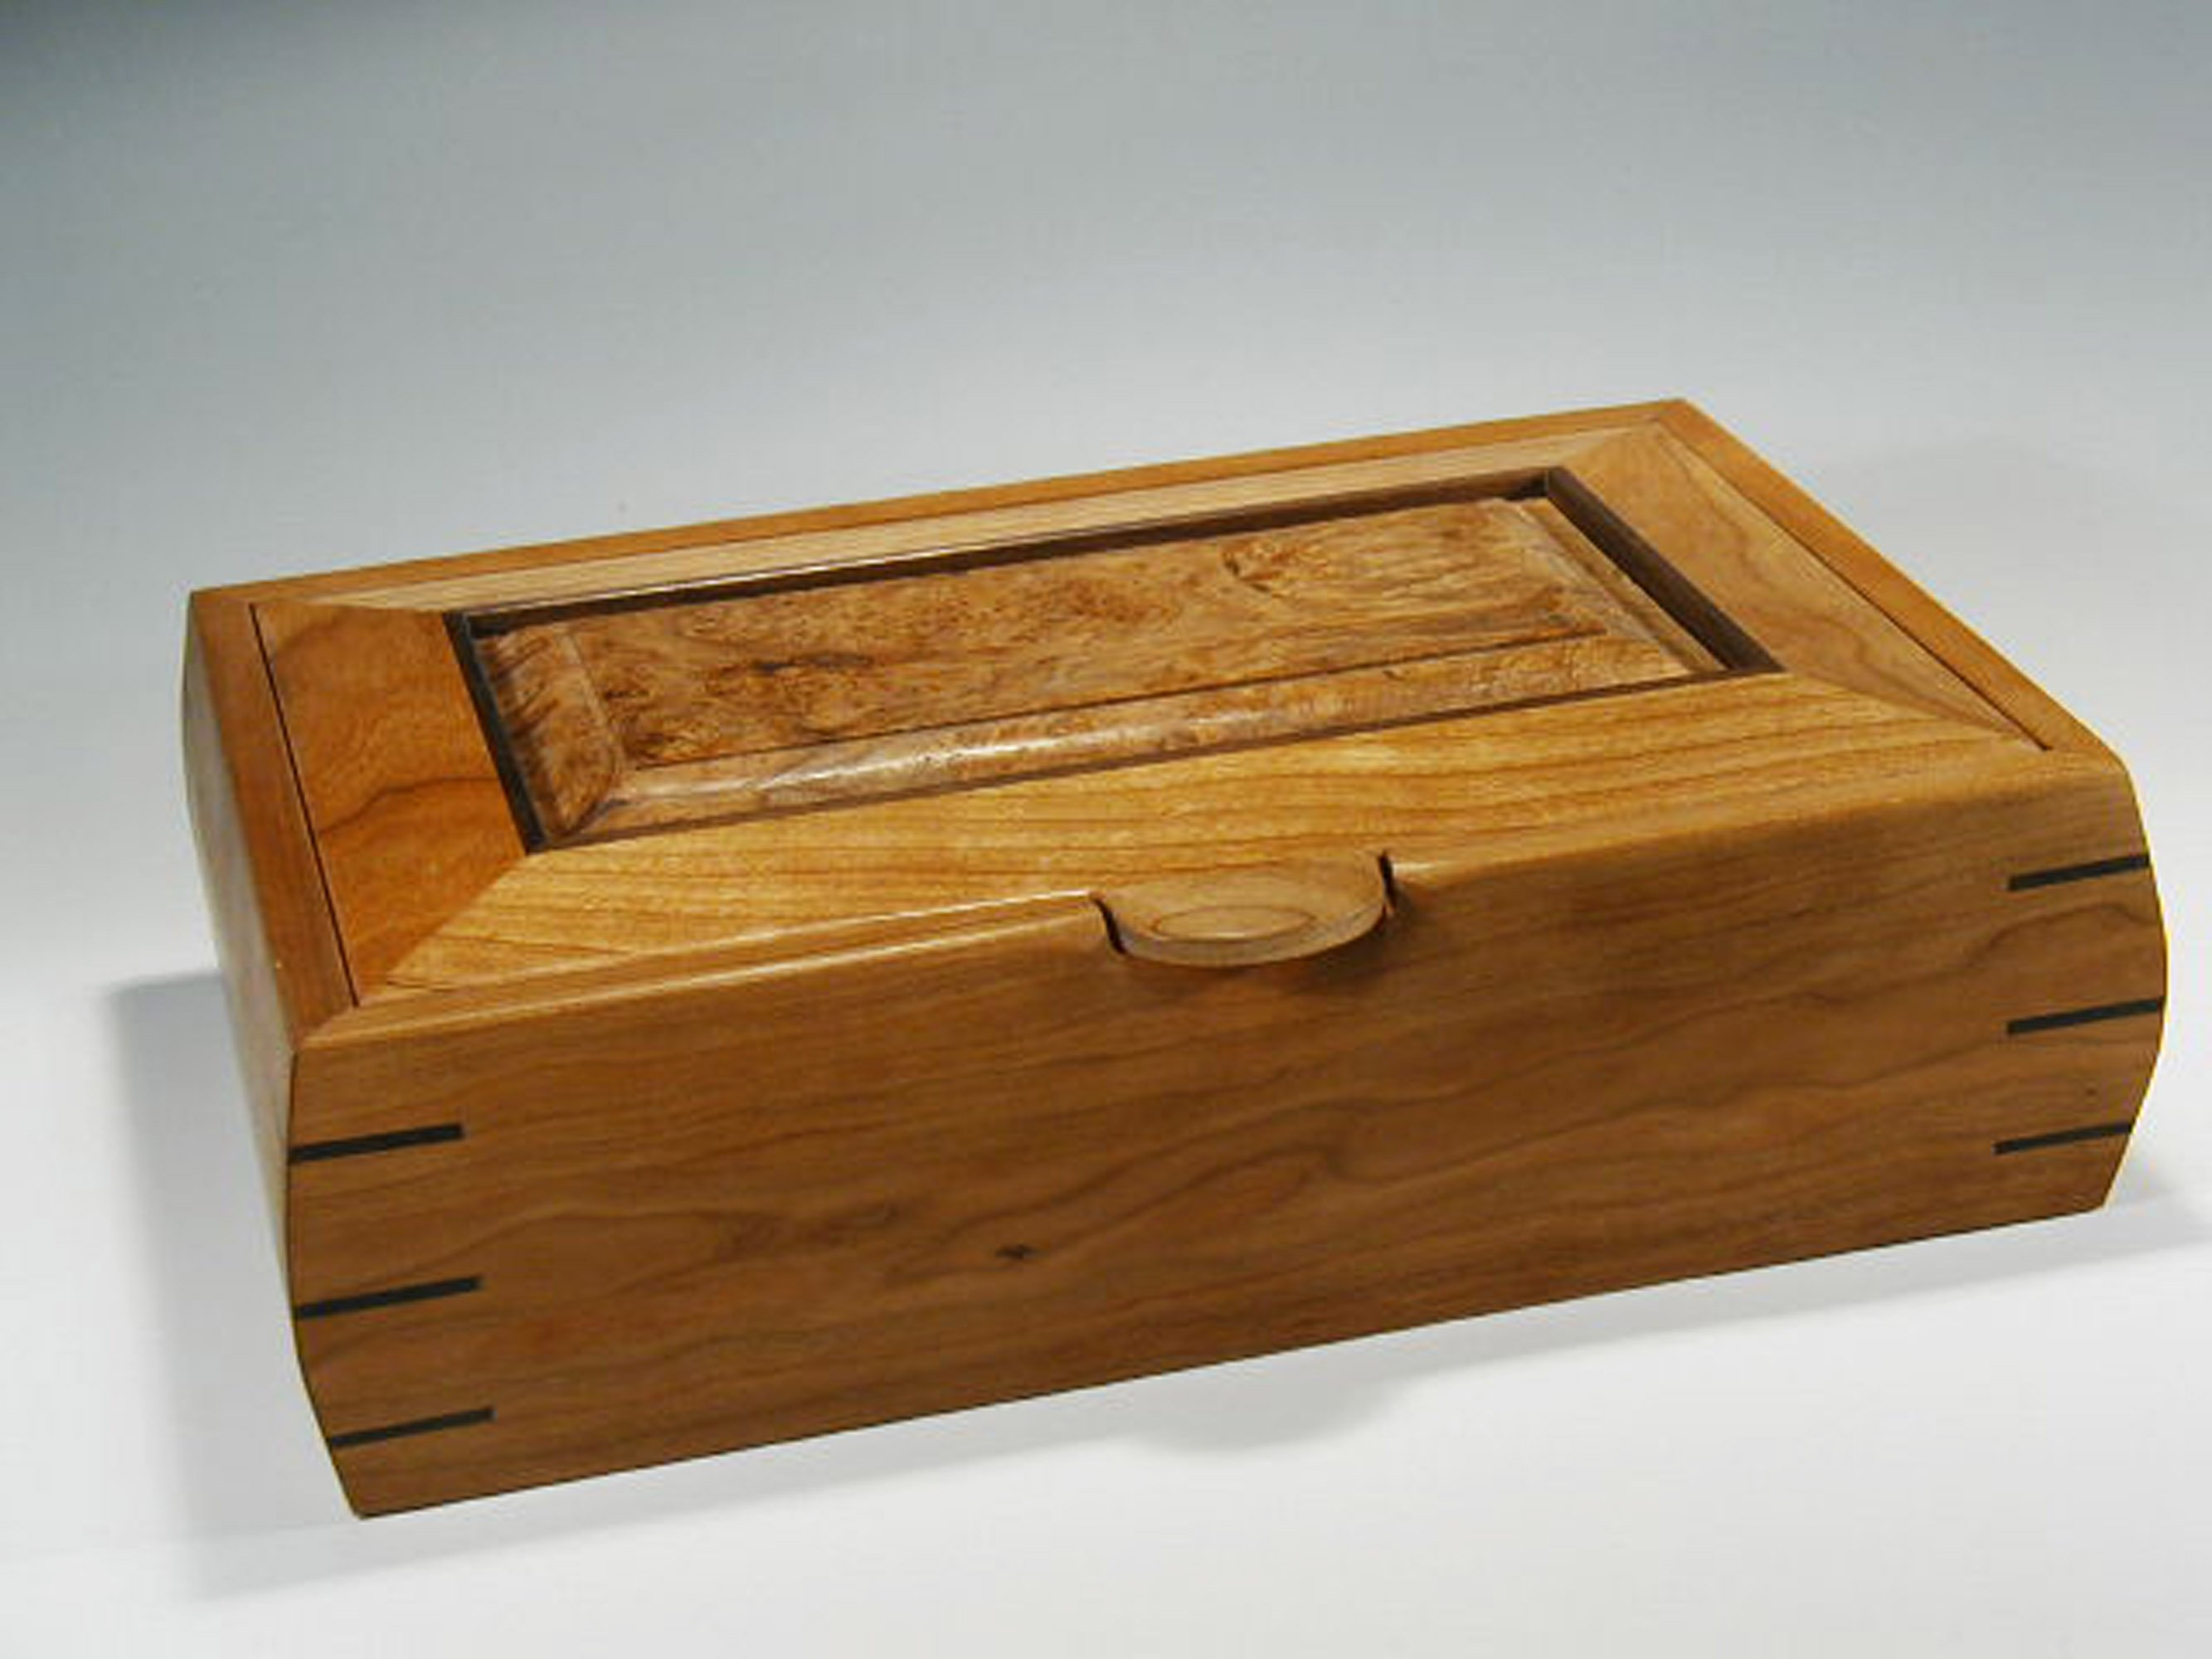 This is one of my handmade wooden boxes that can be used as a watch jewelry box; it is made of cherry wood.